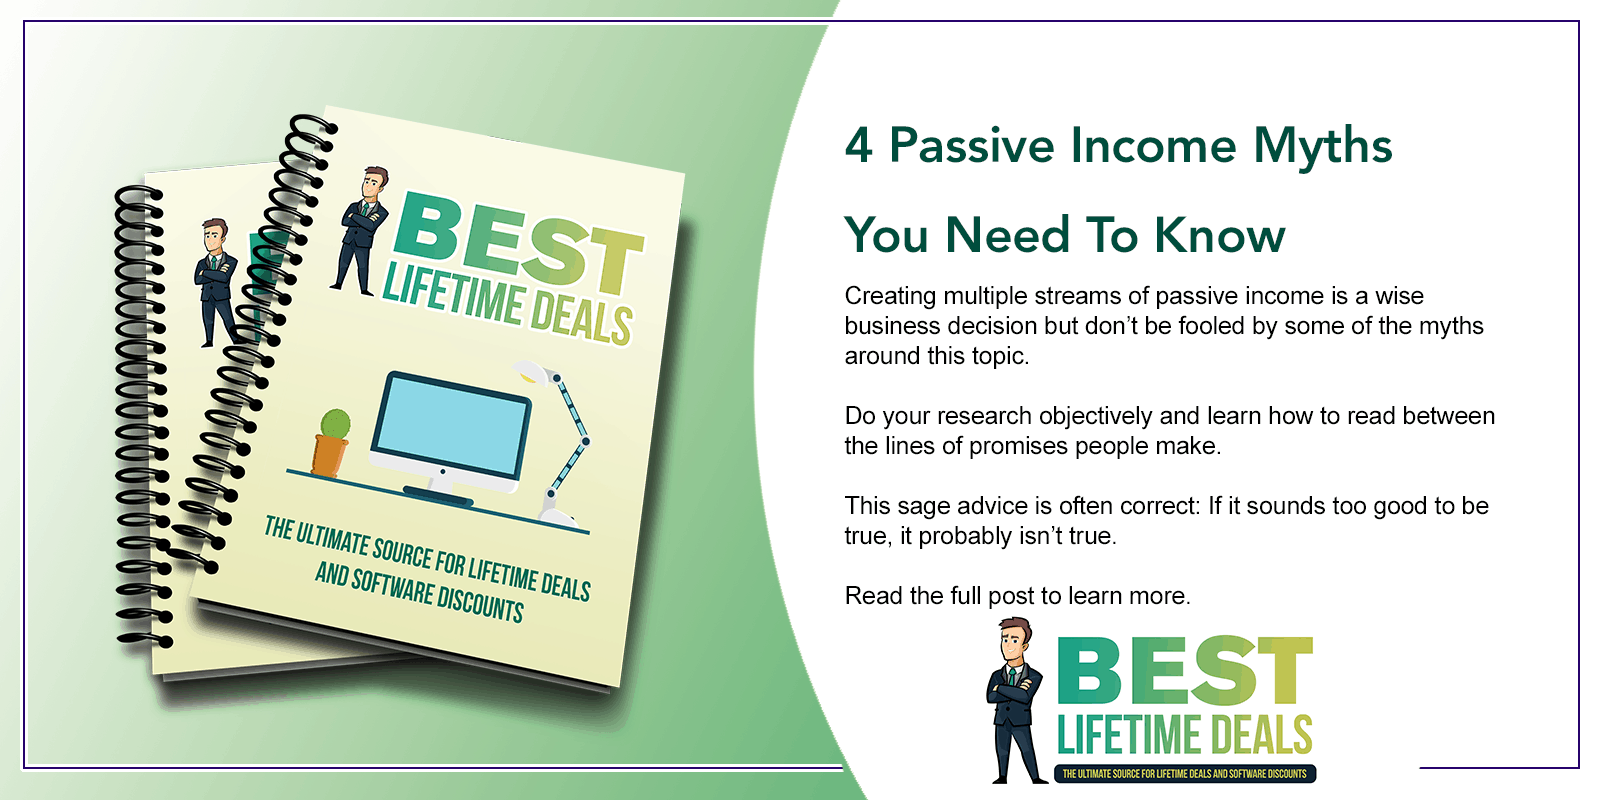 4 Passive Income Myths You Need To Know Featured Image.